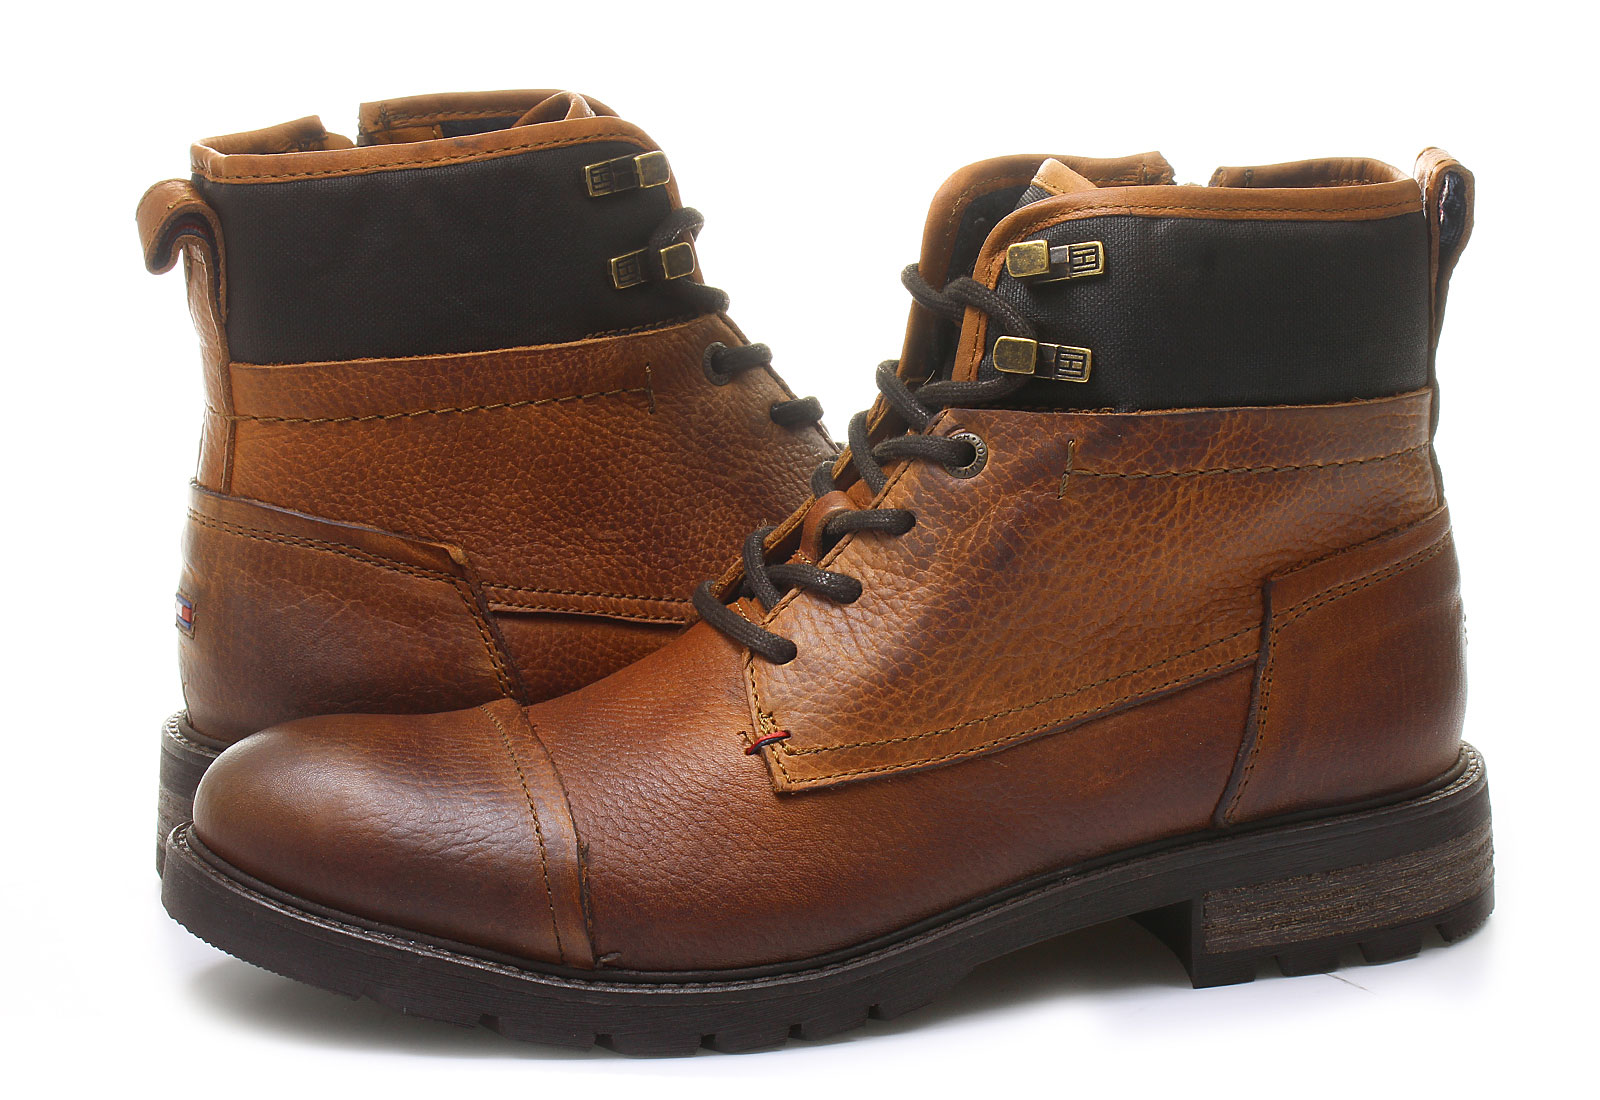 tommy hilfiger boots curtis 13a 16f 1742 906 online shop for sneakers shoes and boots. Black Bedroom Furniture Sets. Home Design Ideas